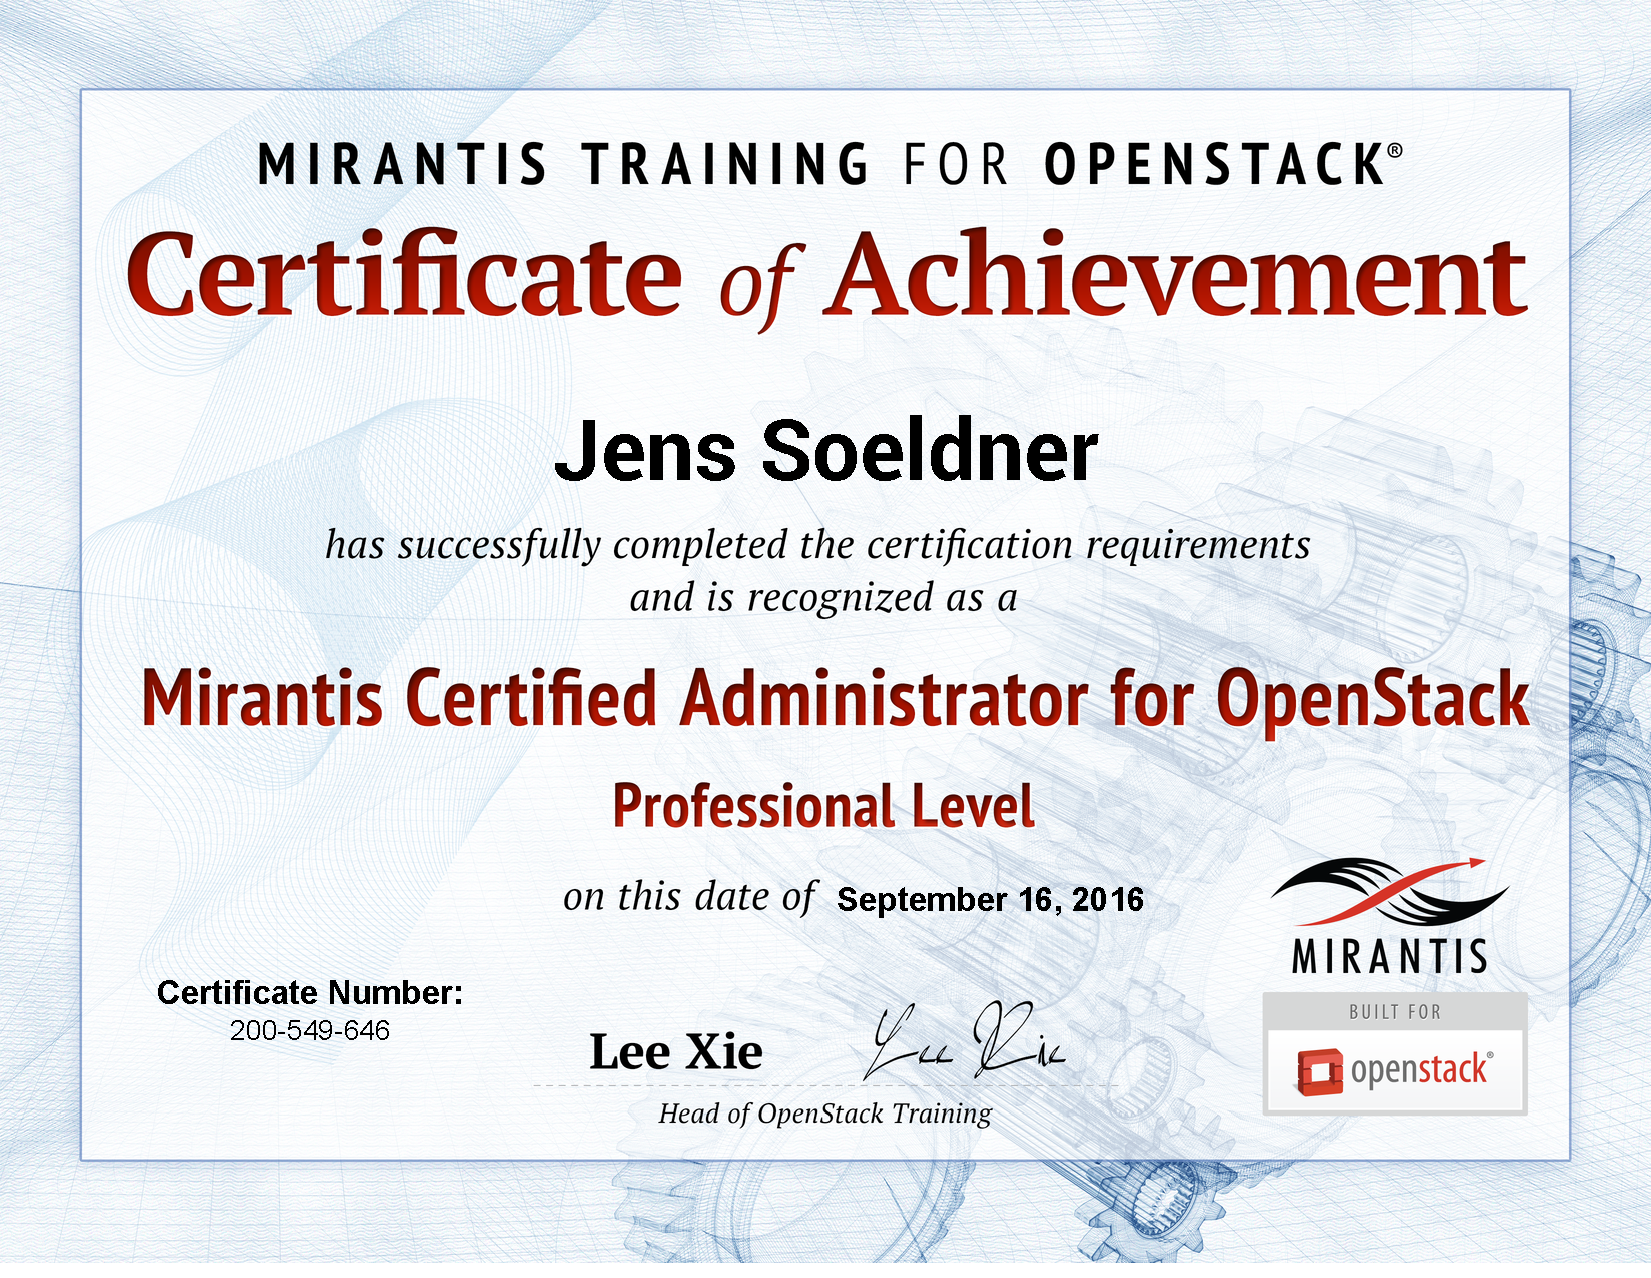 Mirantis Training My Experience With The Os110 Bootcamp Cloud